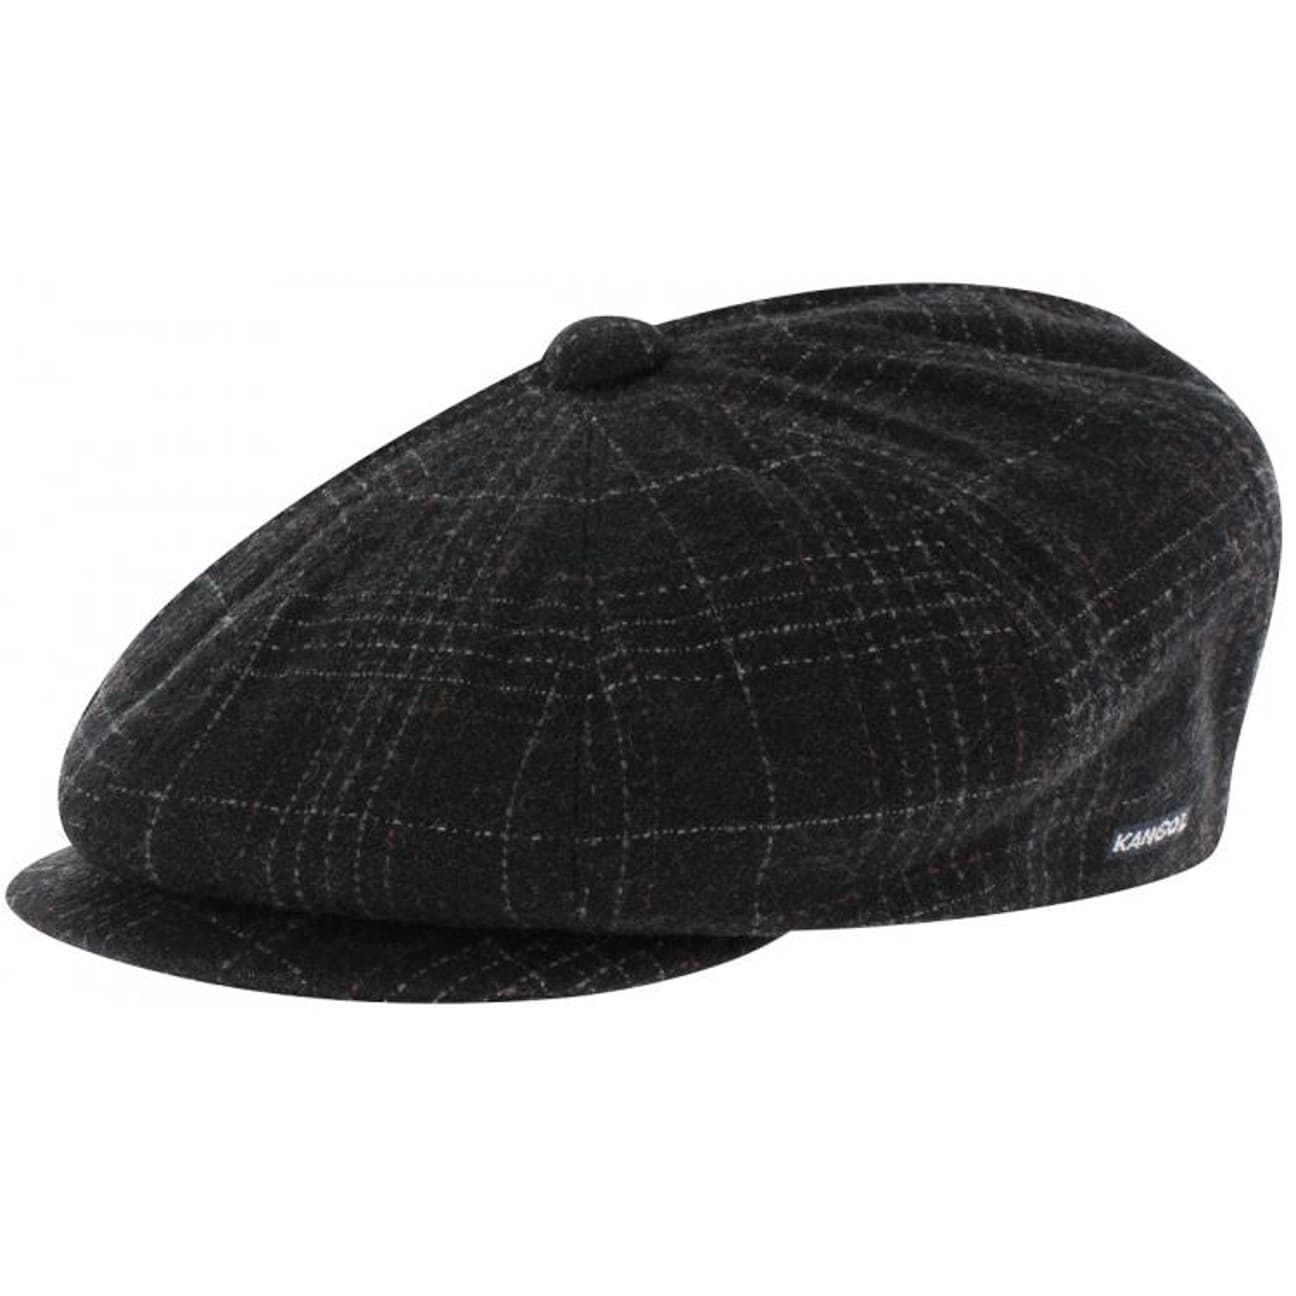 Kangol Tweed Ripley Cap - anthracite 1 2d40a6e2718